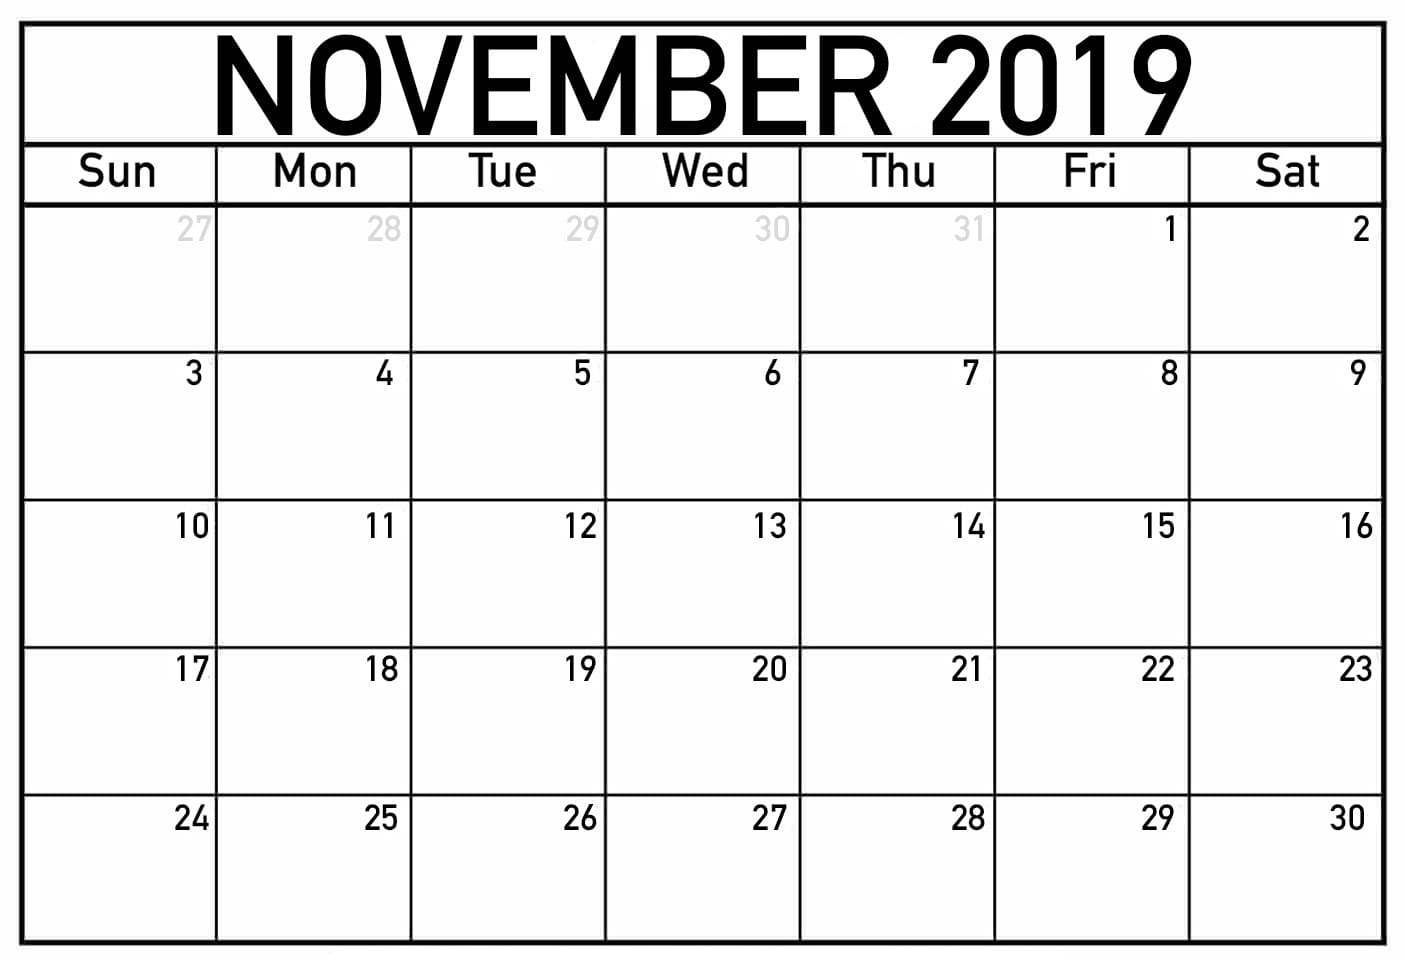 November 2019 Calendar Template Word 2019 Calendar September